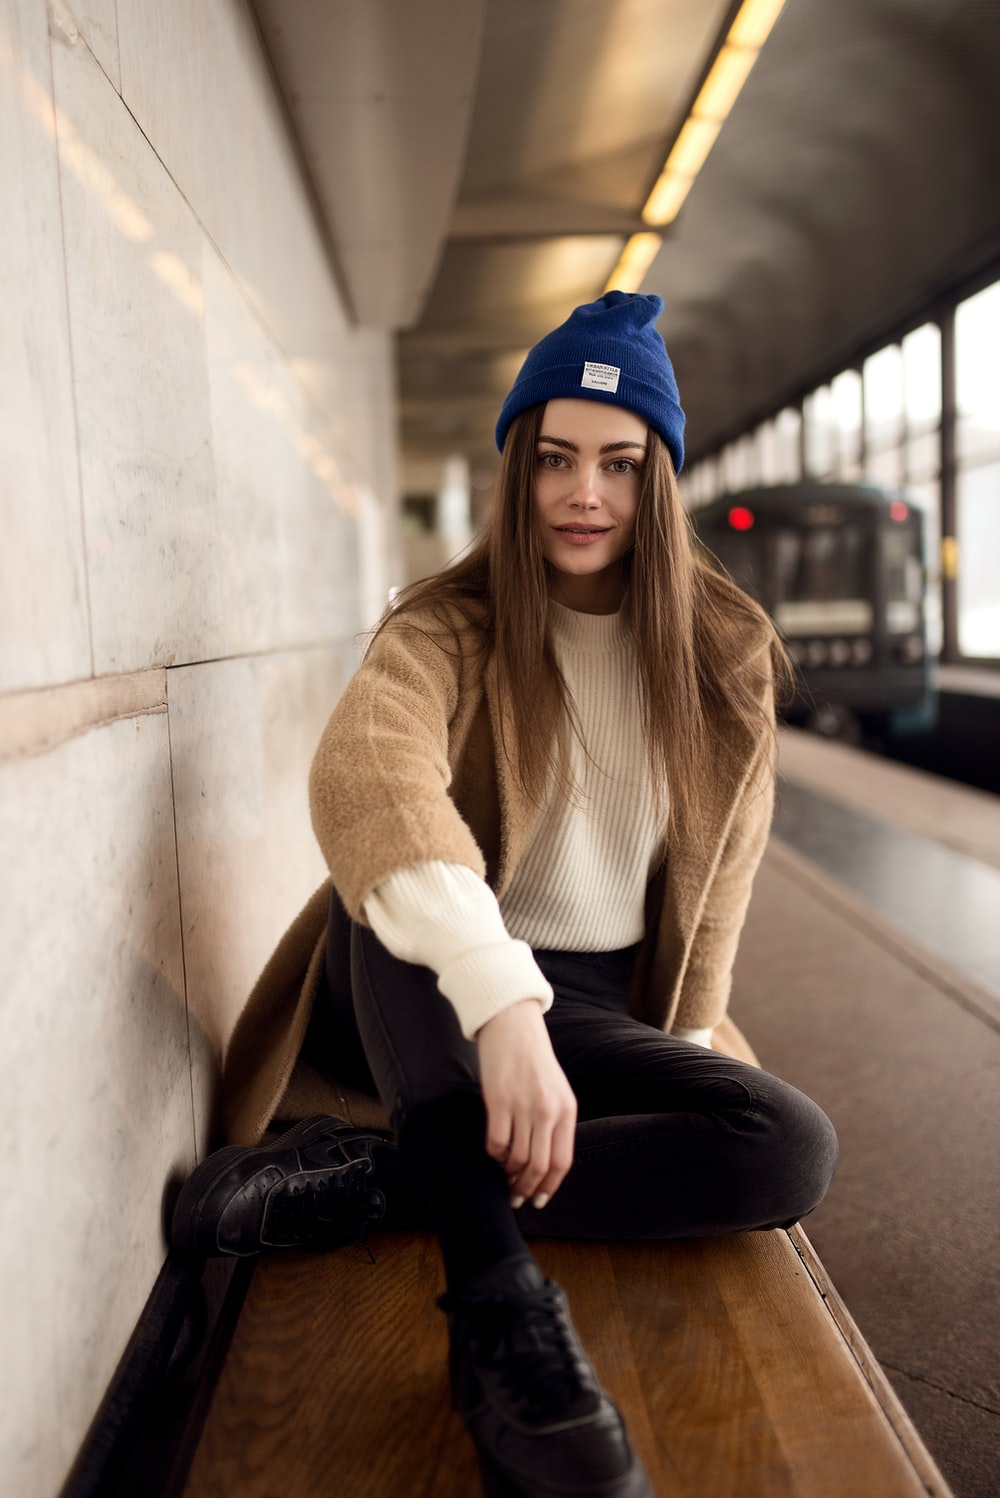 woman wearing beige sweater and black pants sitting on bench